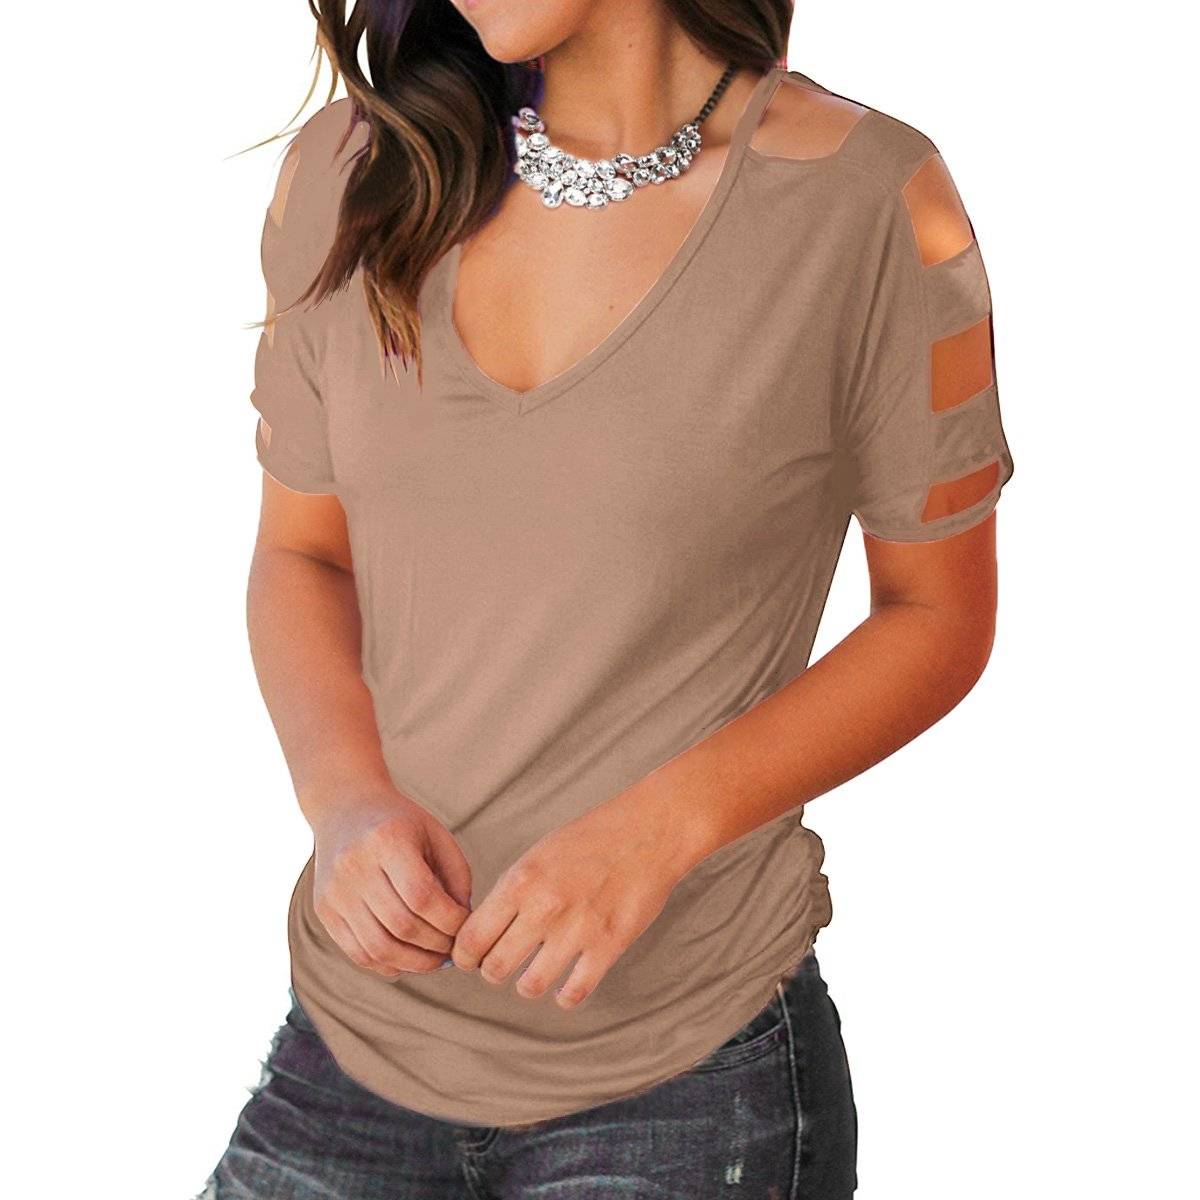 Eanklosco Women\'s Long Sleeve V Neck Cold Shoulder Cut Out T Shirts Casual Tunic Tops (L/UK 12, Light Coffee-Short)